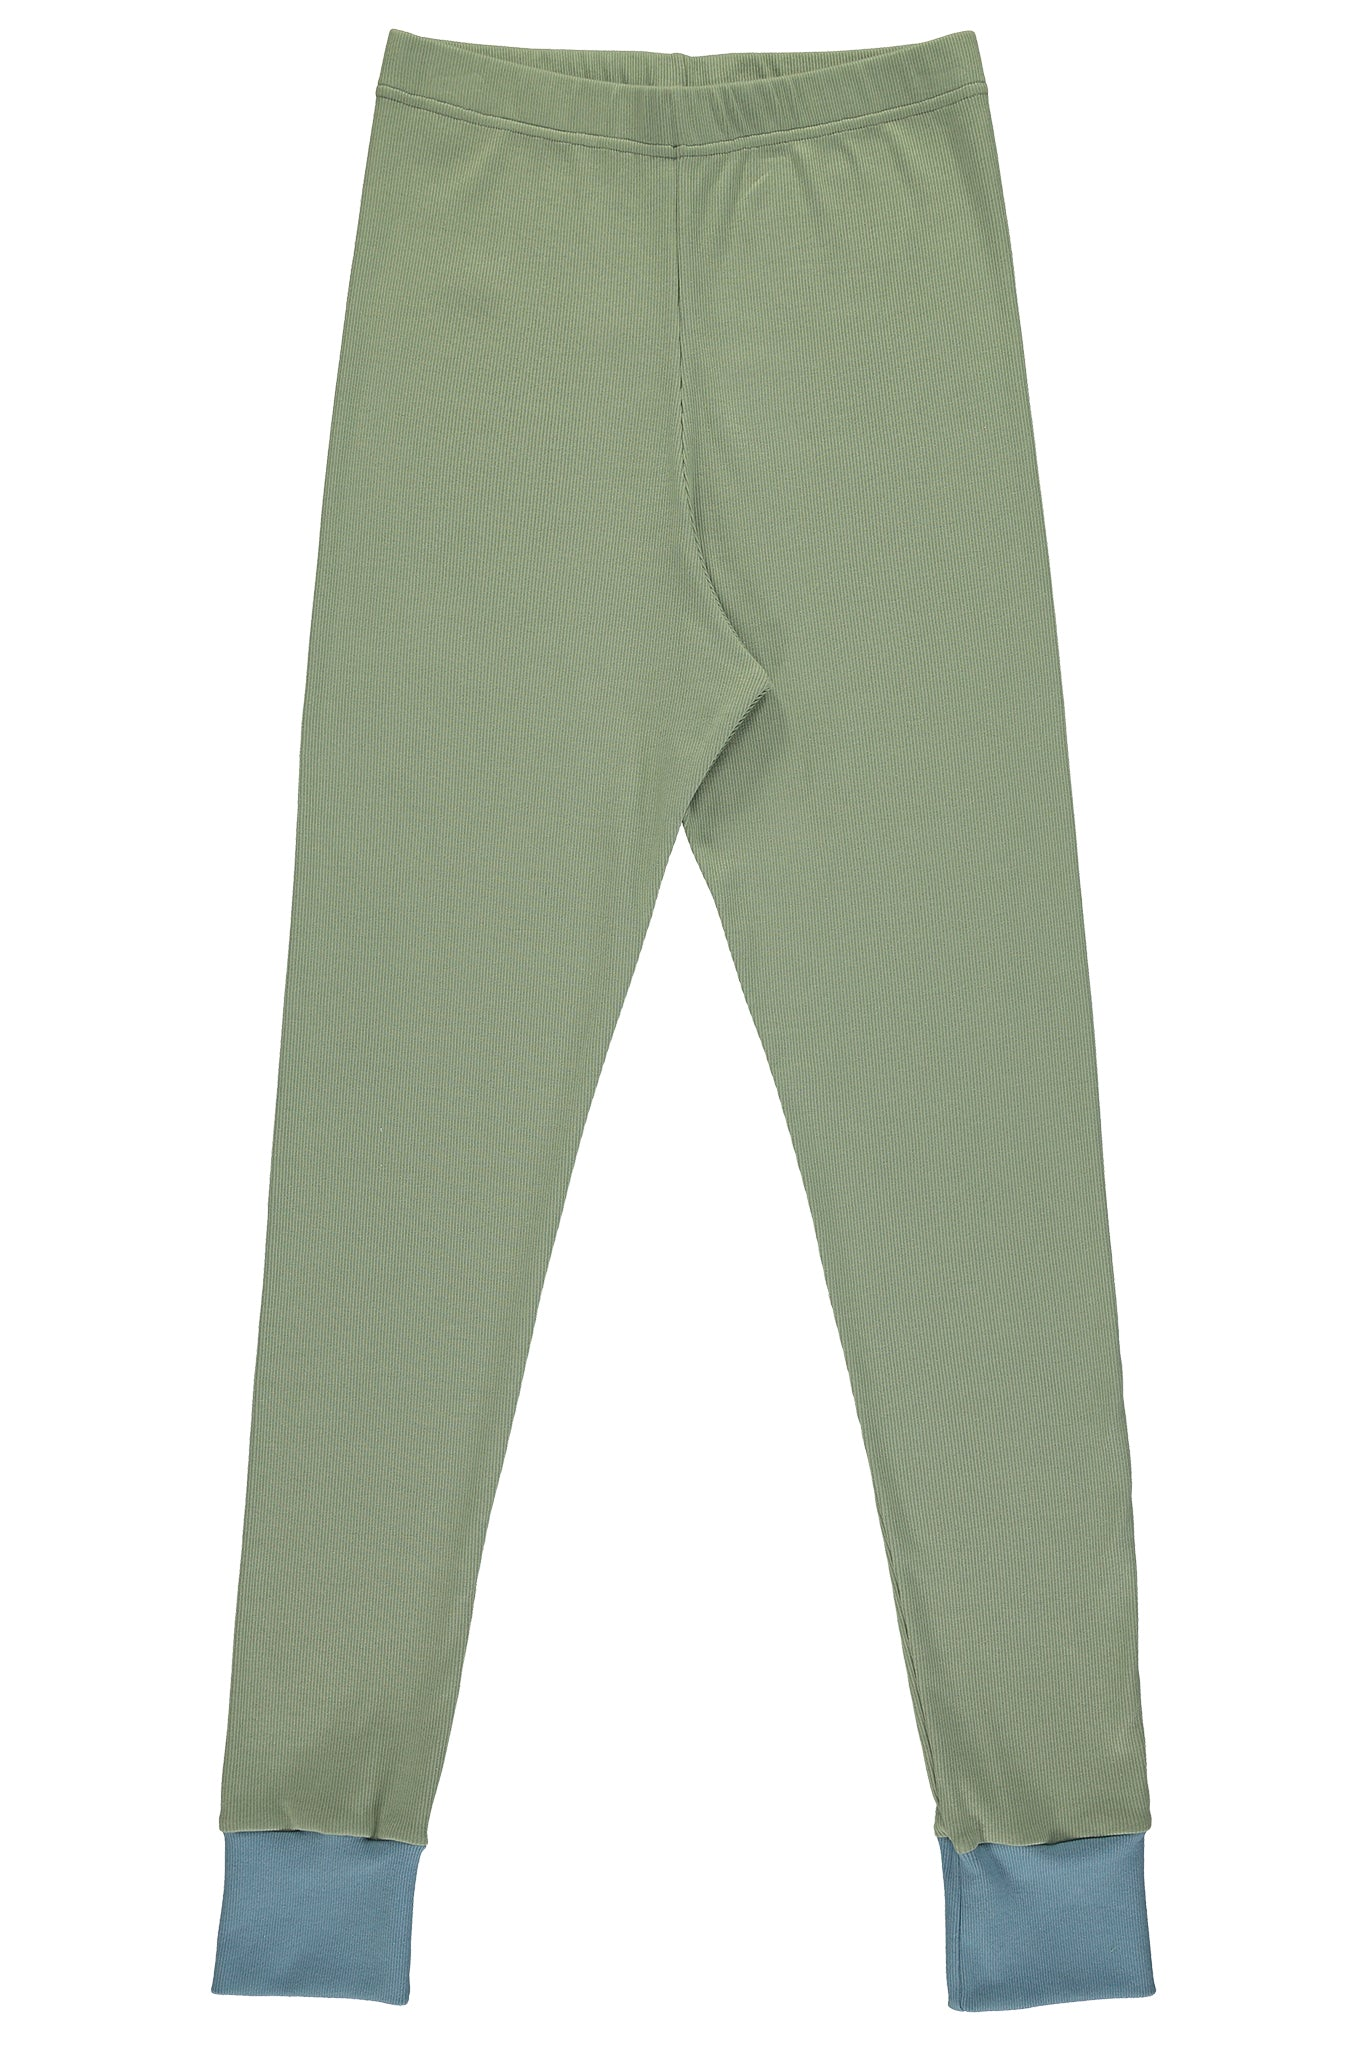 MEN'S SLIM JYMS PYJAMAS - CHRISTMAS SPECIALS - SAGE - The Bright Company